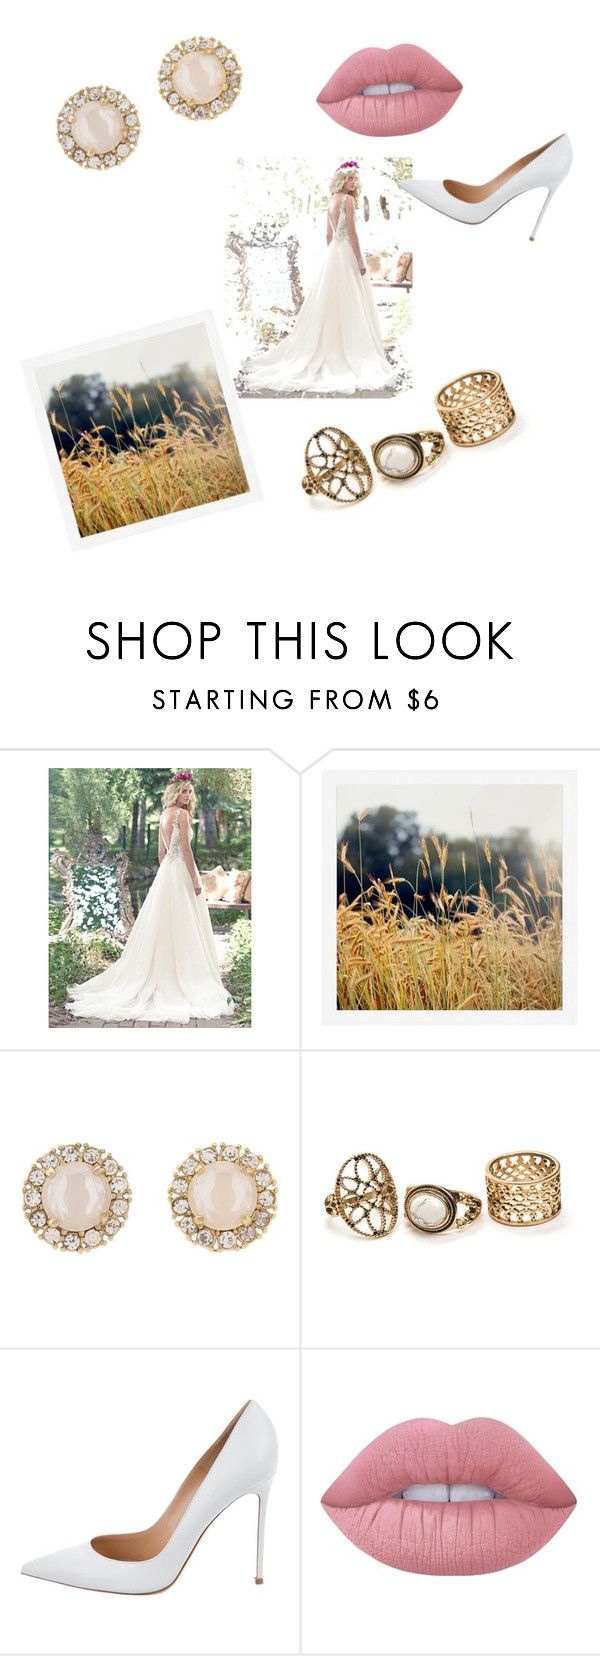 """""""Noiva"""" by jadyeleng on Polyvore featuring Pottery Barn, Kate Spade, Gianvito Rossi and Lime Crime"""